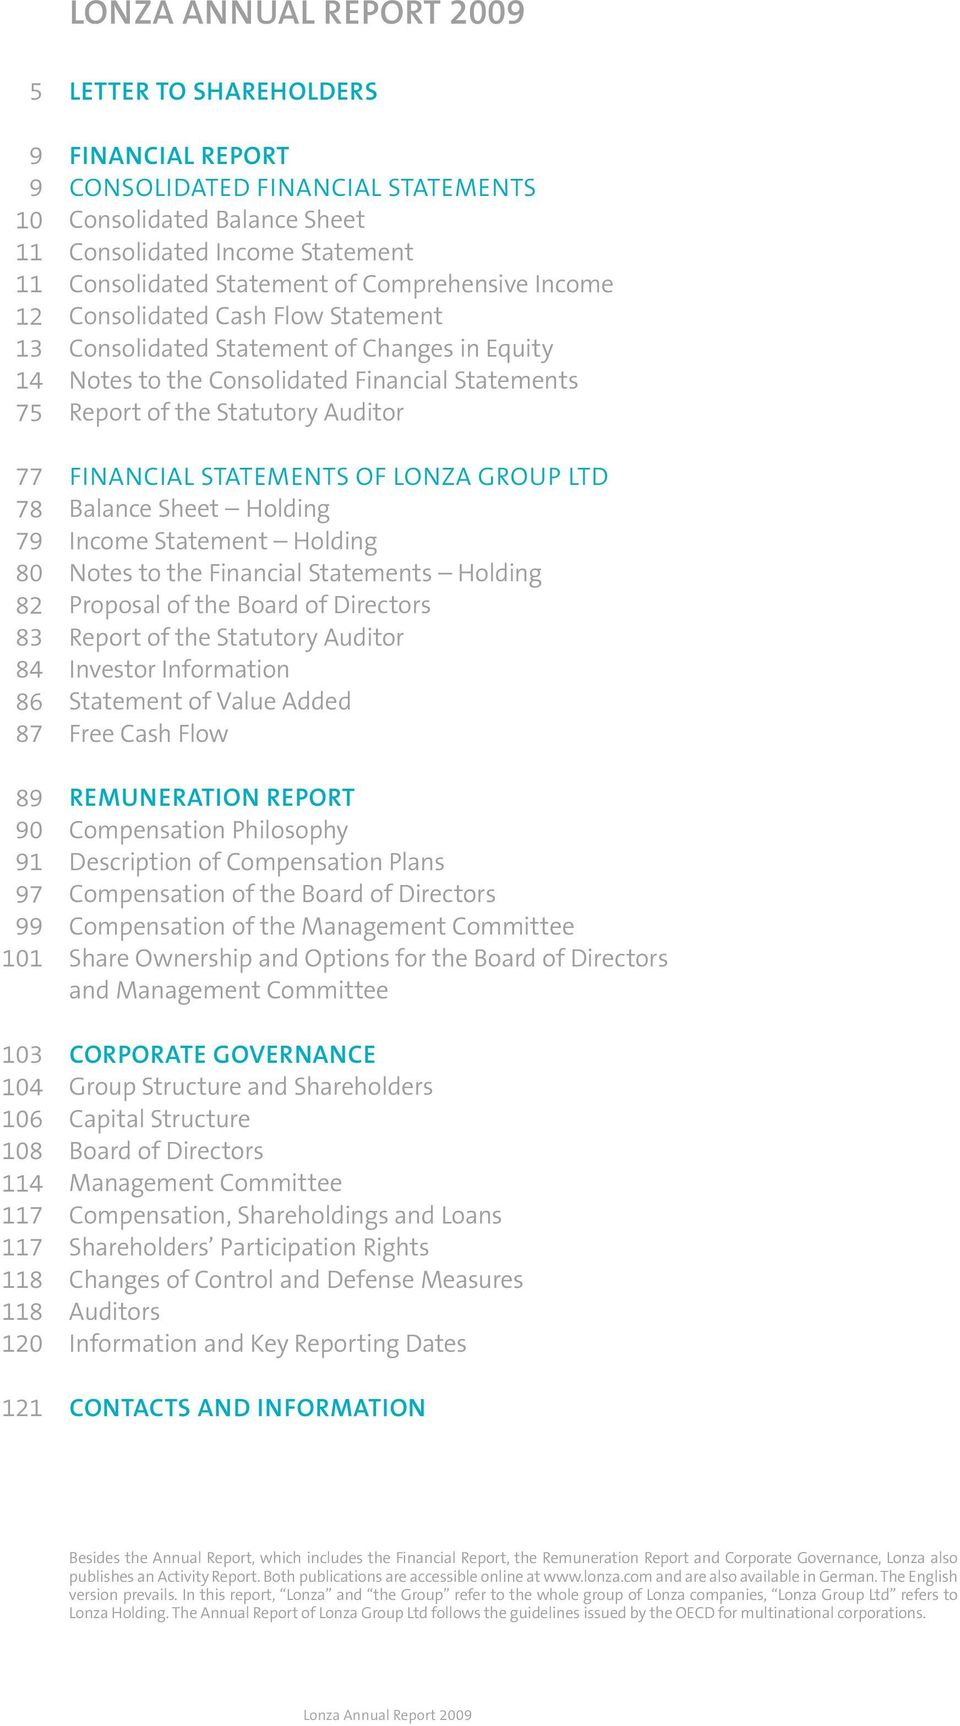 Equity Notes to the Consolidated Financial Statements Report of the Statutory Auditor Financial Statements of Lonza Group Ltd Balance Sheet Holding Income Statement Holding Notes to the Financial